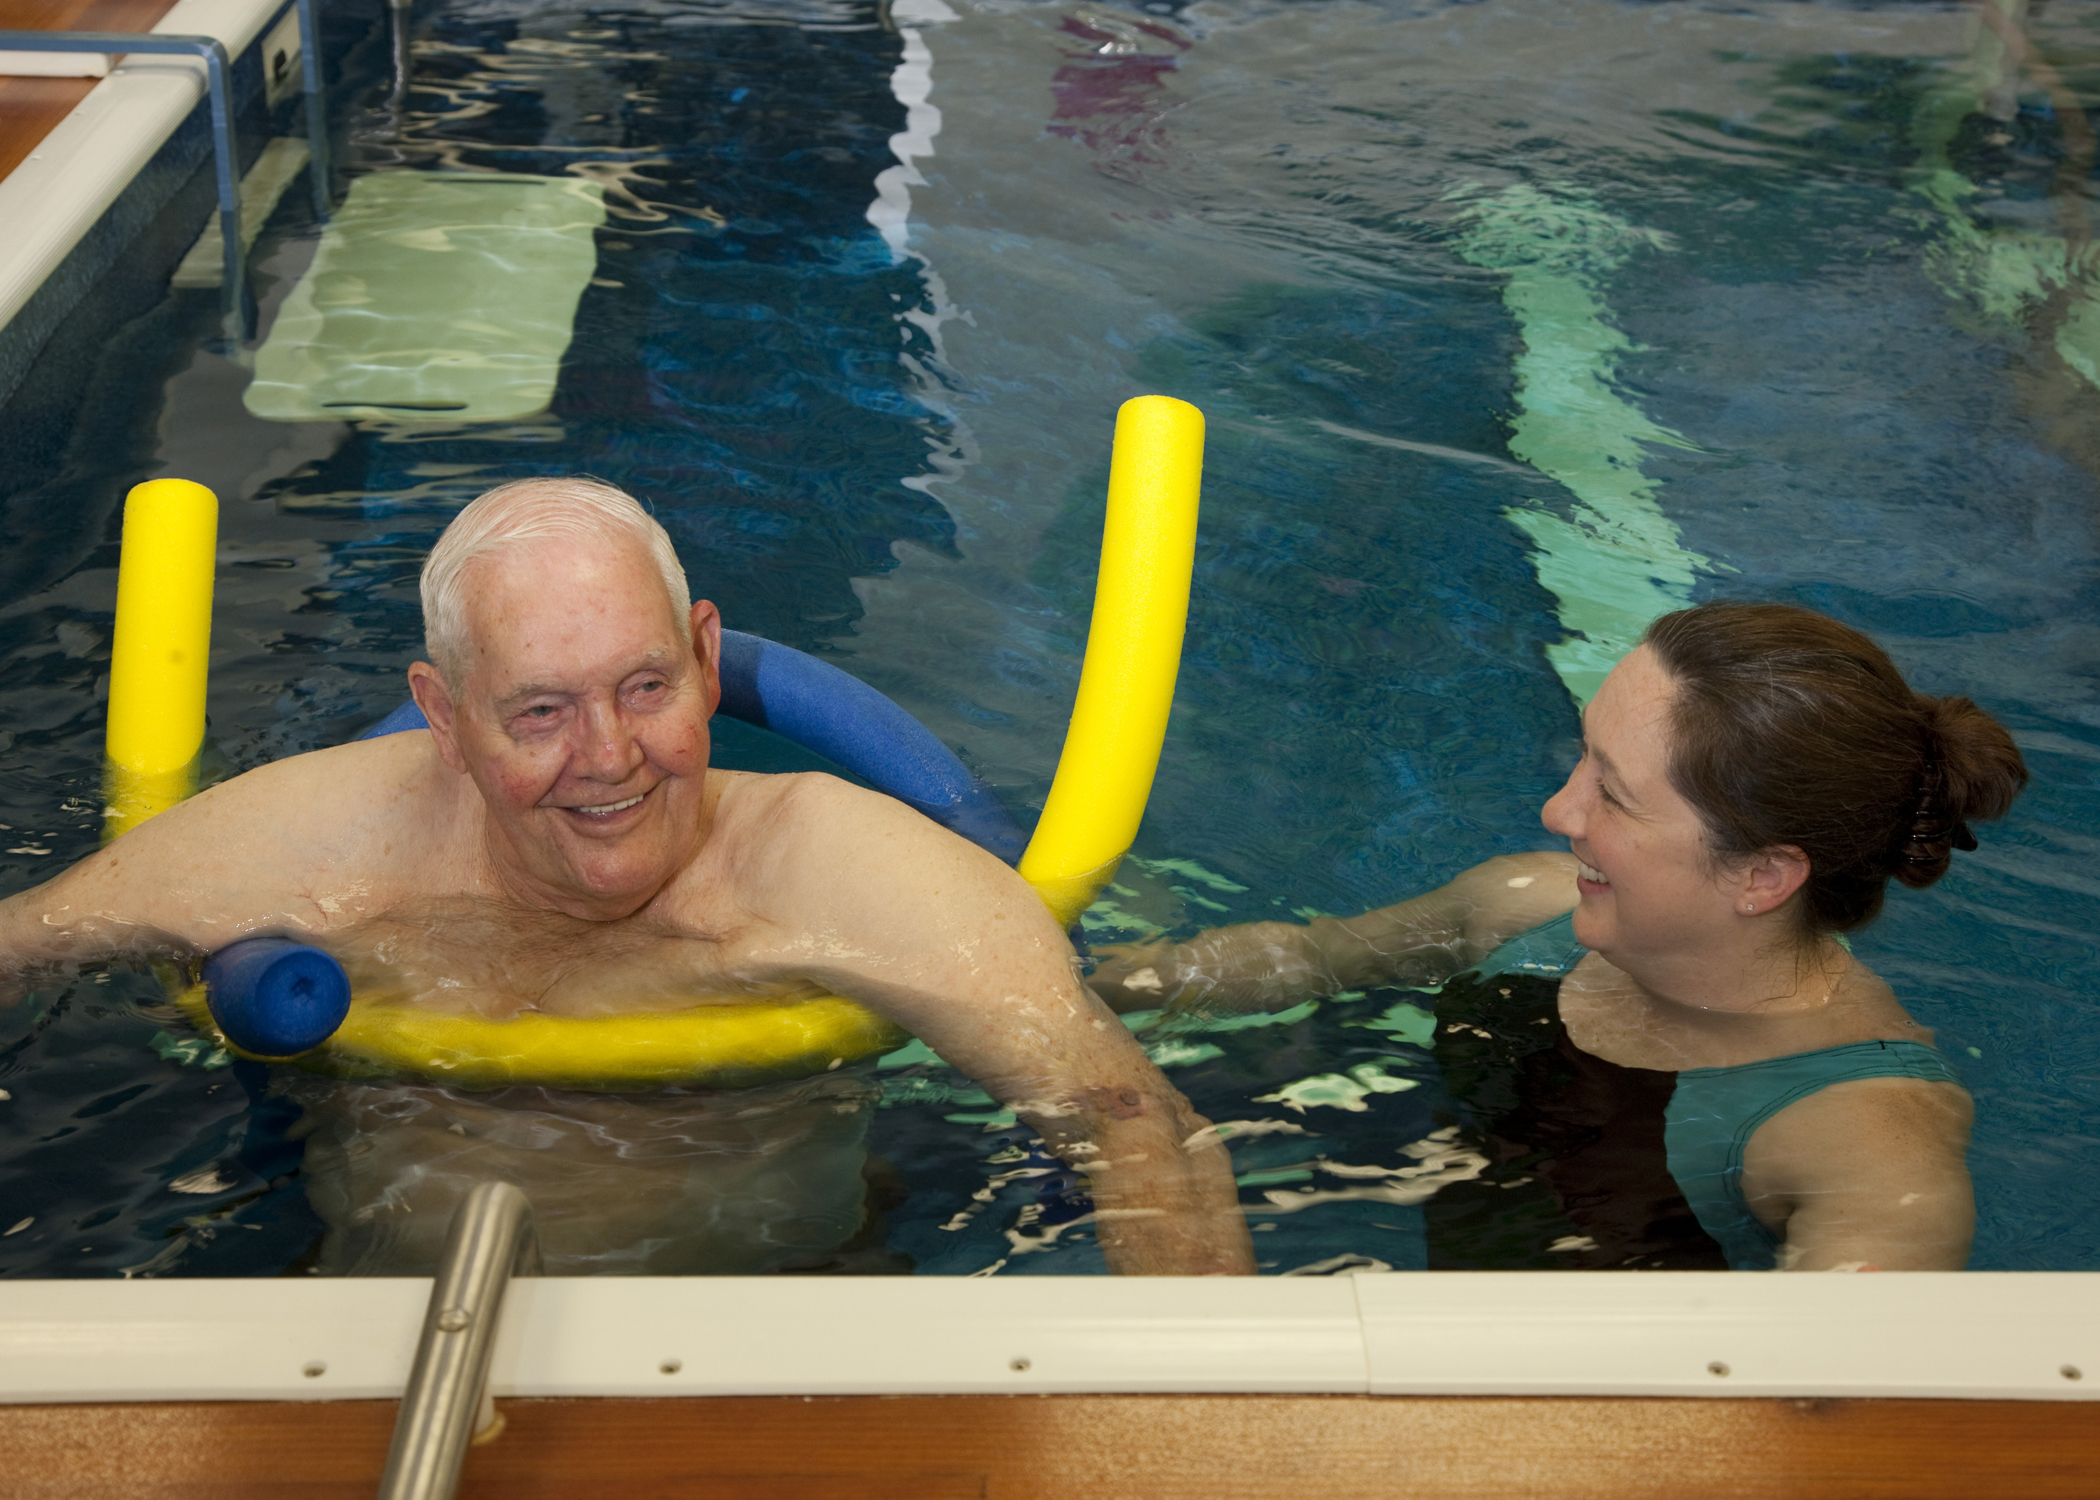 PPT-Aquatic-Therapy_09.jpg